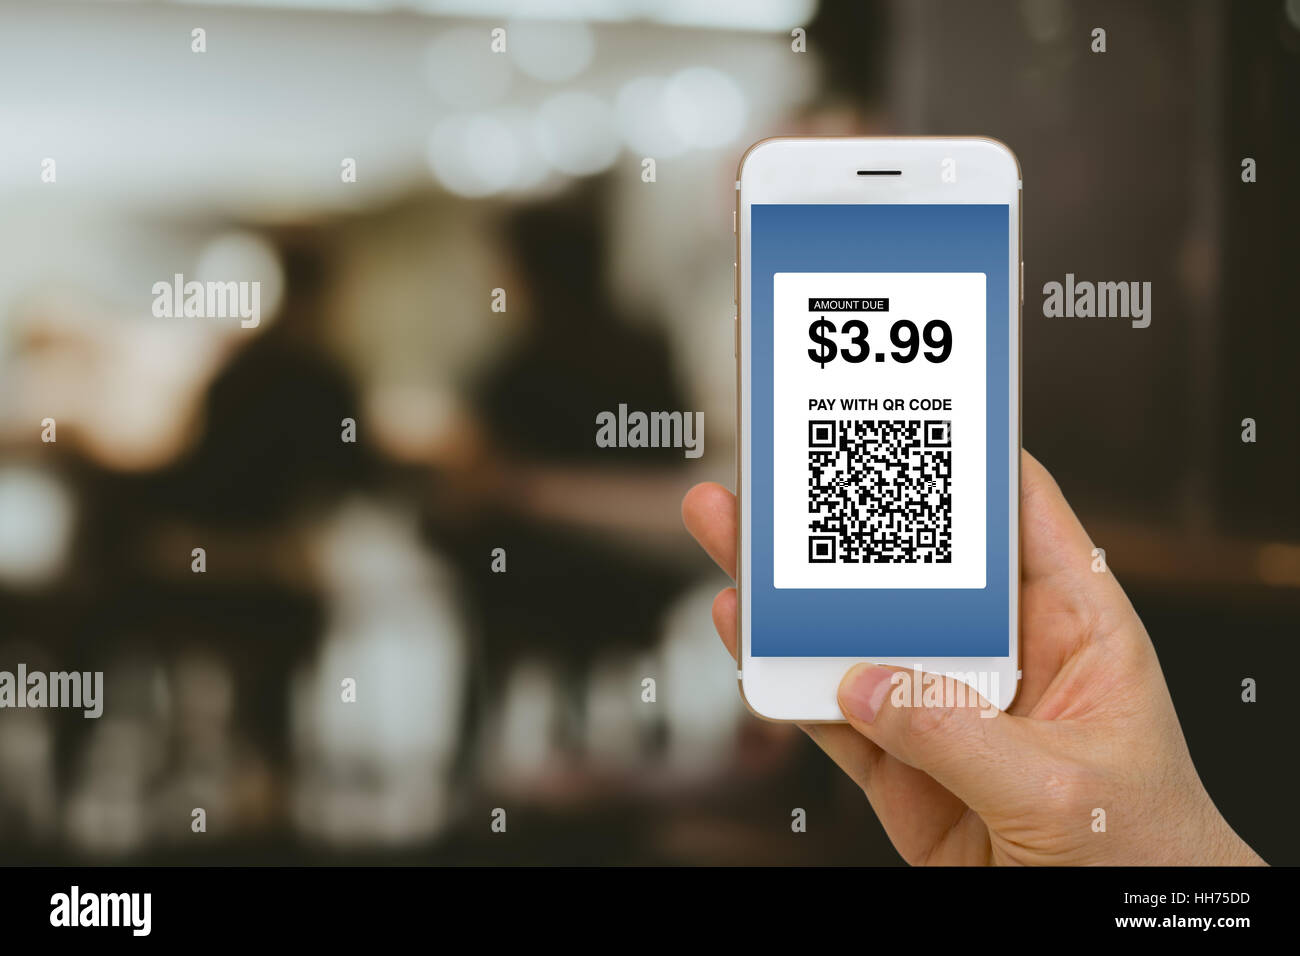 Fintech concept, paying for goods and services by smartphone using E-Wallet and E-Money. Stock Photo